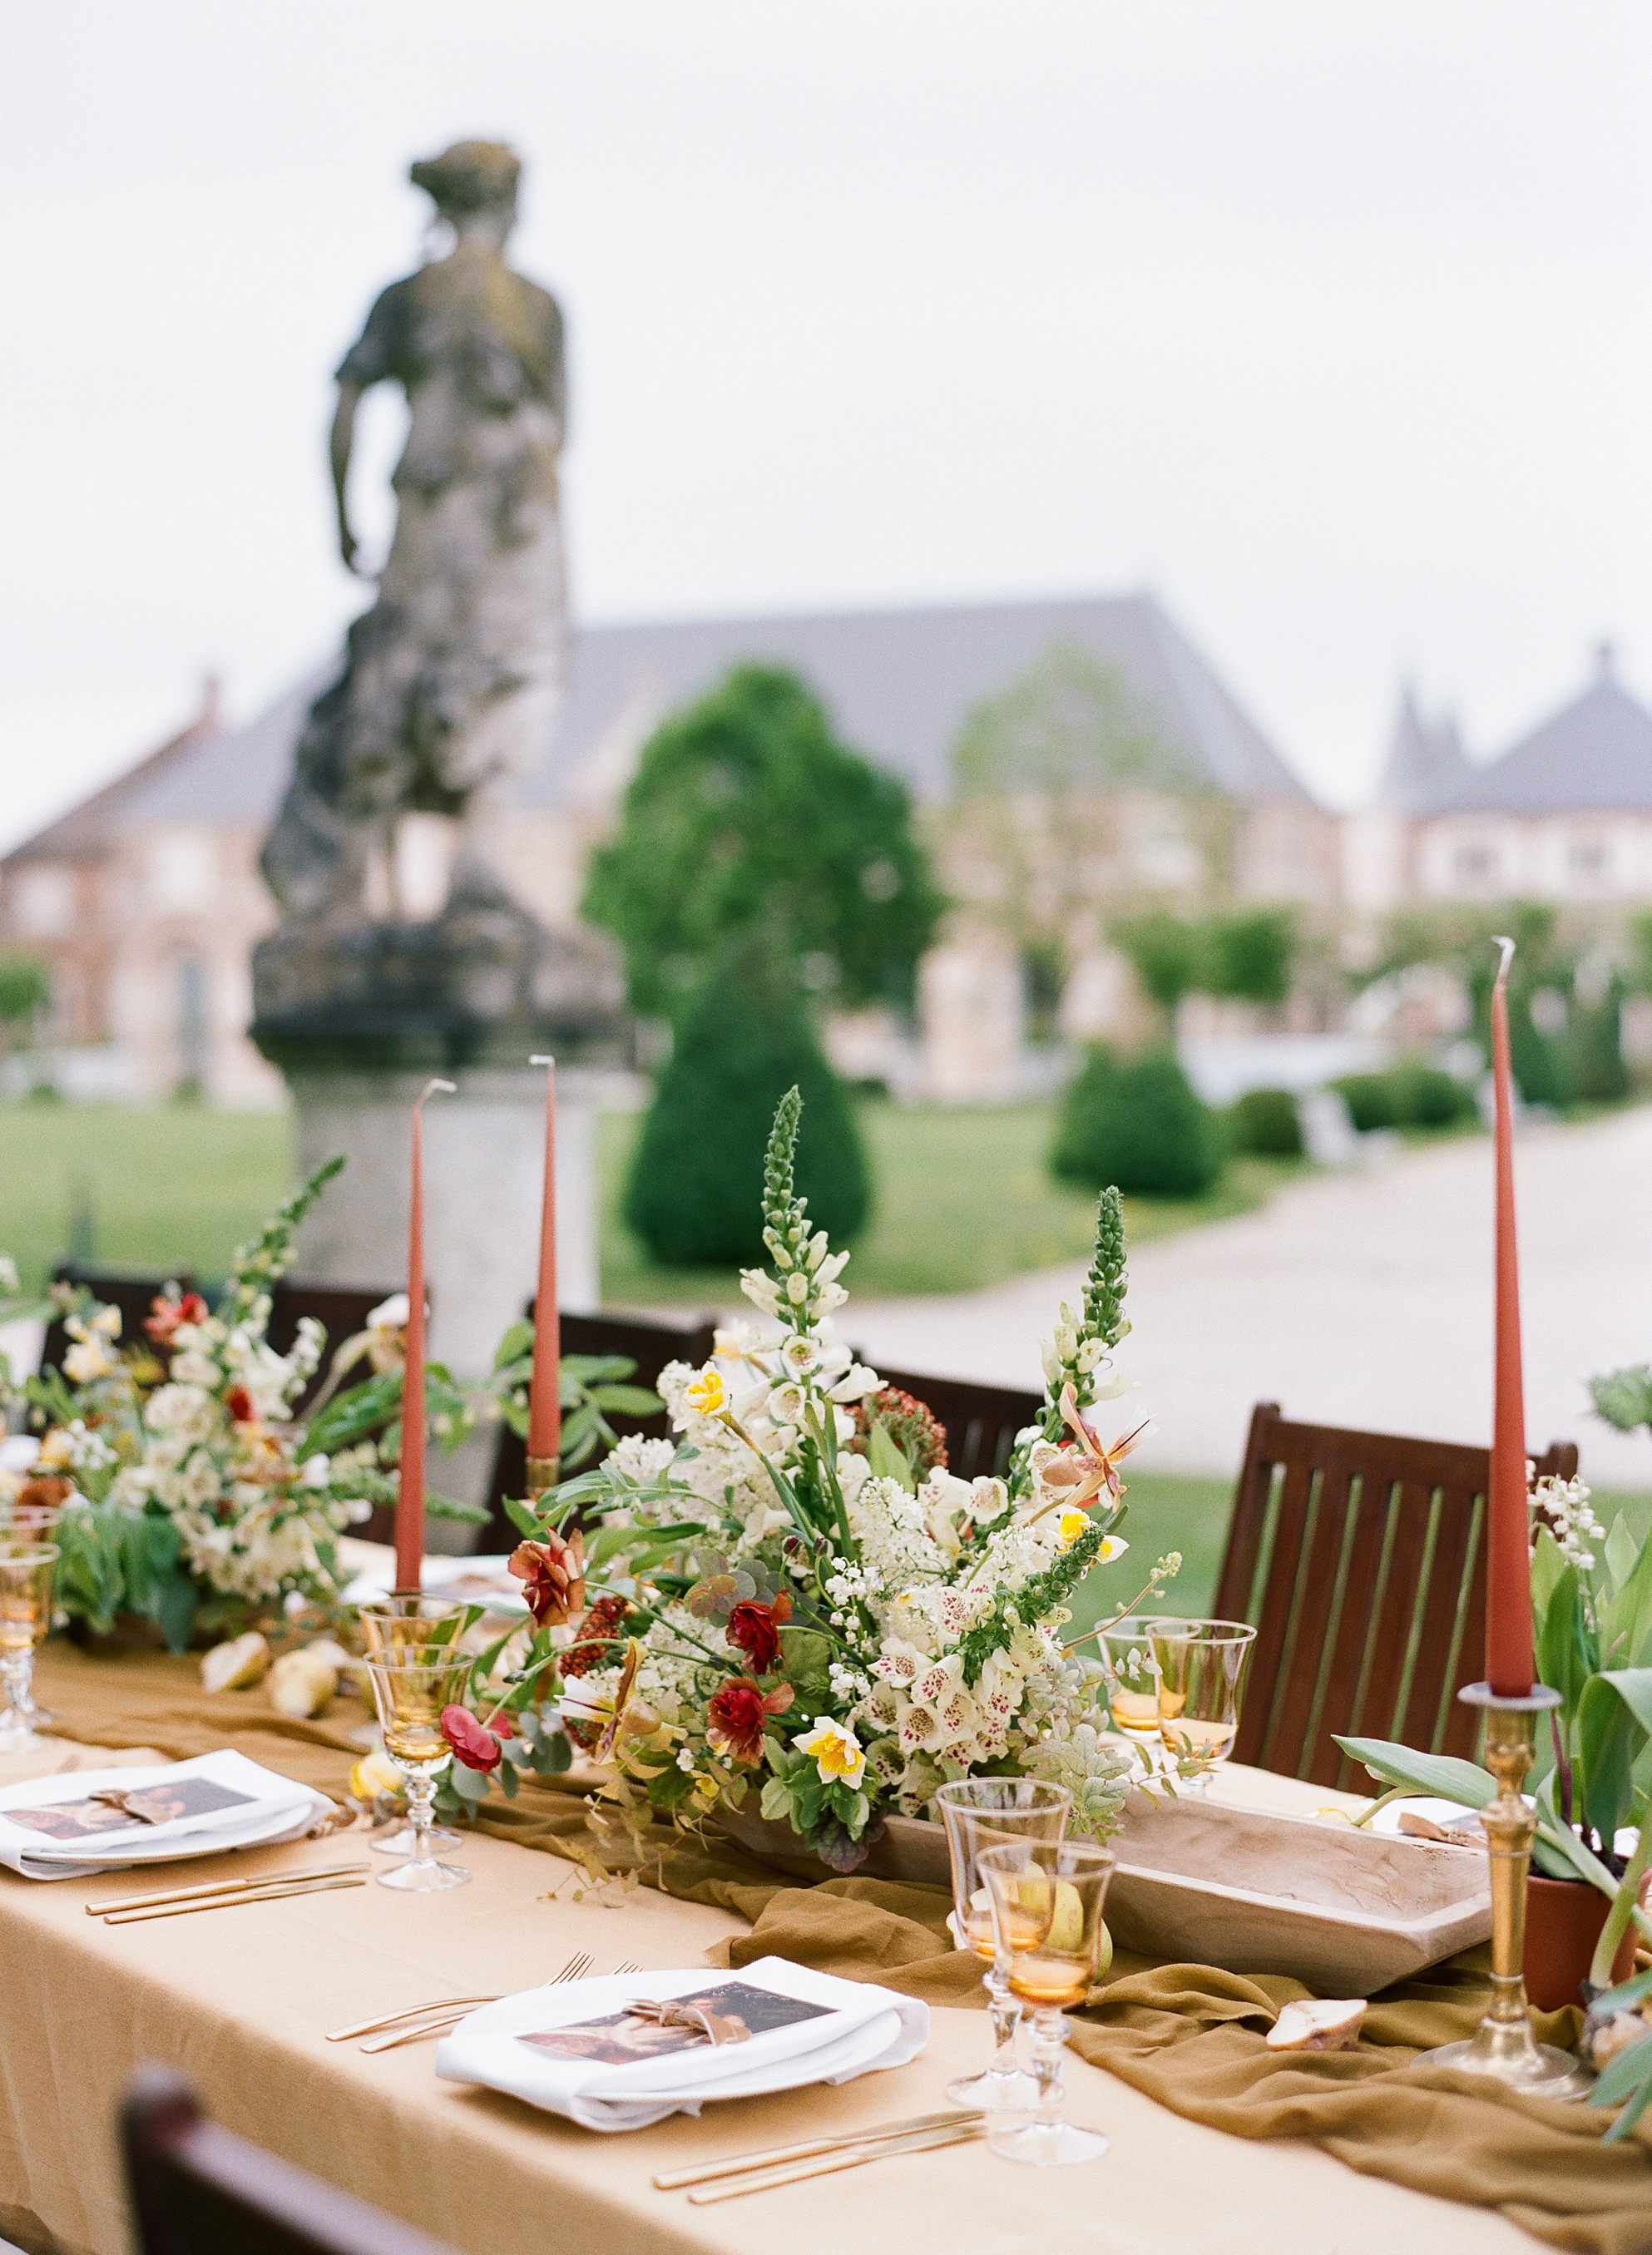 A richly colored wedding reception table at Chateau de Varennes in Burgundy, France; Sylvie Gil Photography